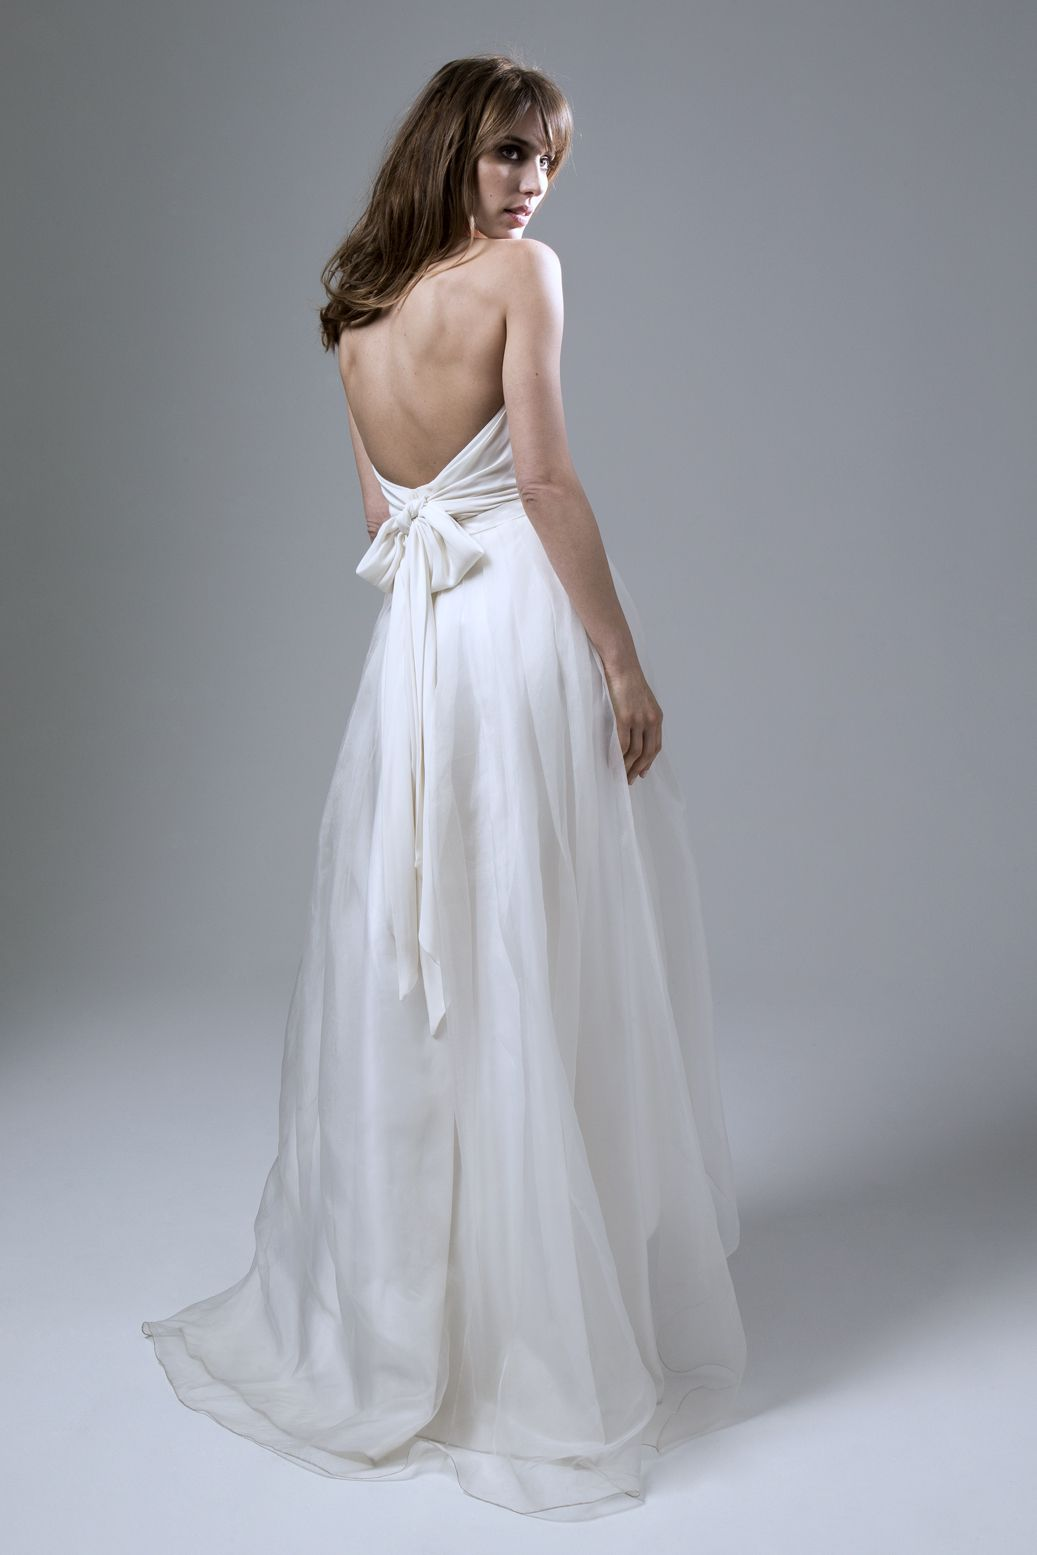 Pleated wedding dress  Wedding dress by Halfpenny London  Bridal Fashion by Kate Halfpenny